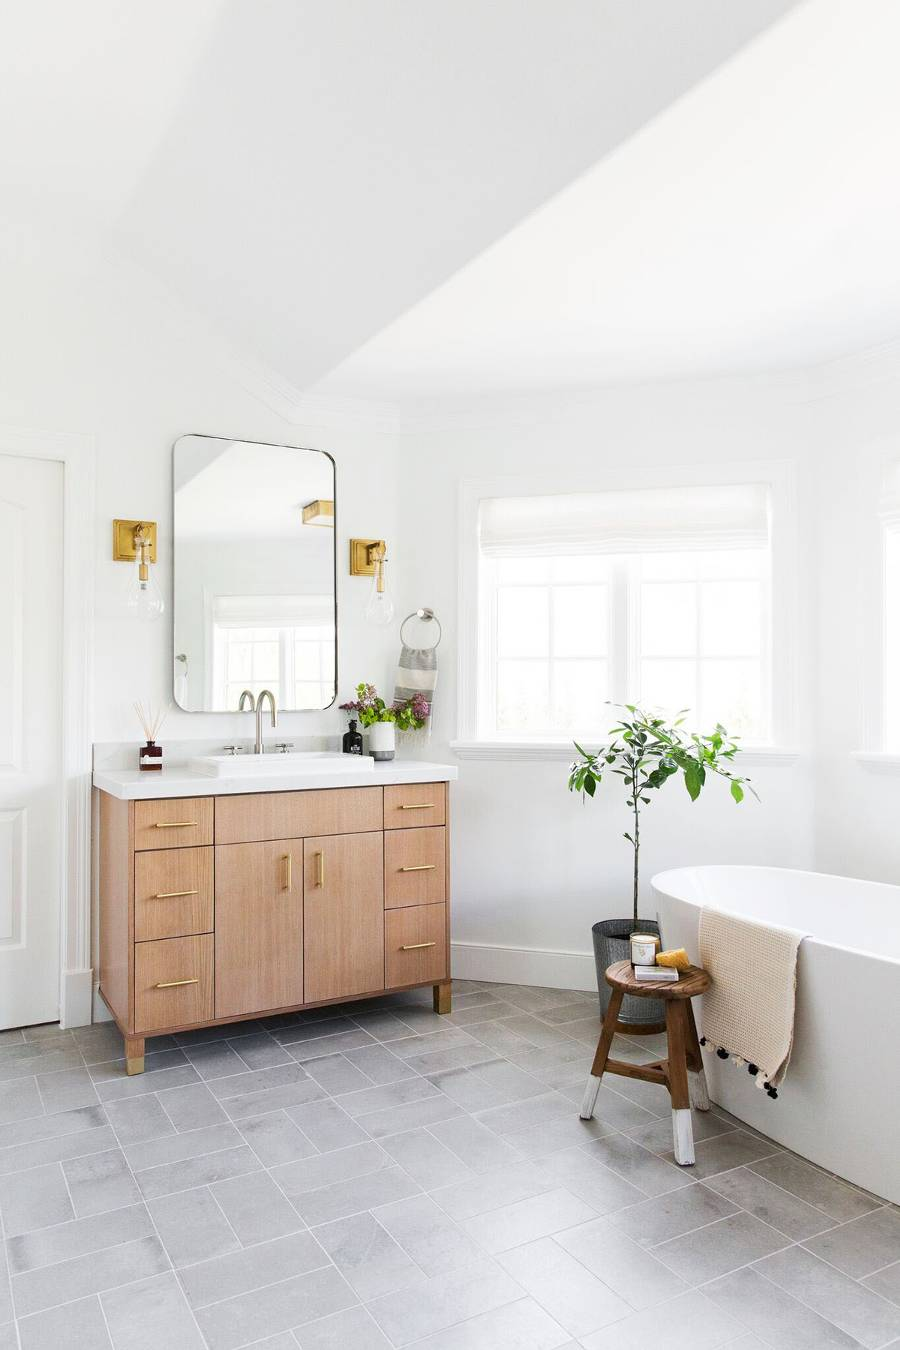 bright and cheery bathroom design freestanding tub in white wooden stool fresh potted greenery white top bathroom vanity with wood surface cabinets system frameless mirror concrete tiled floors